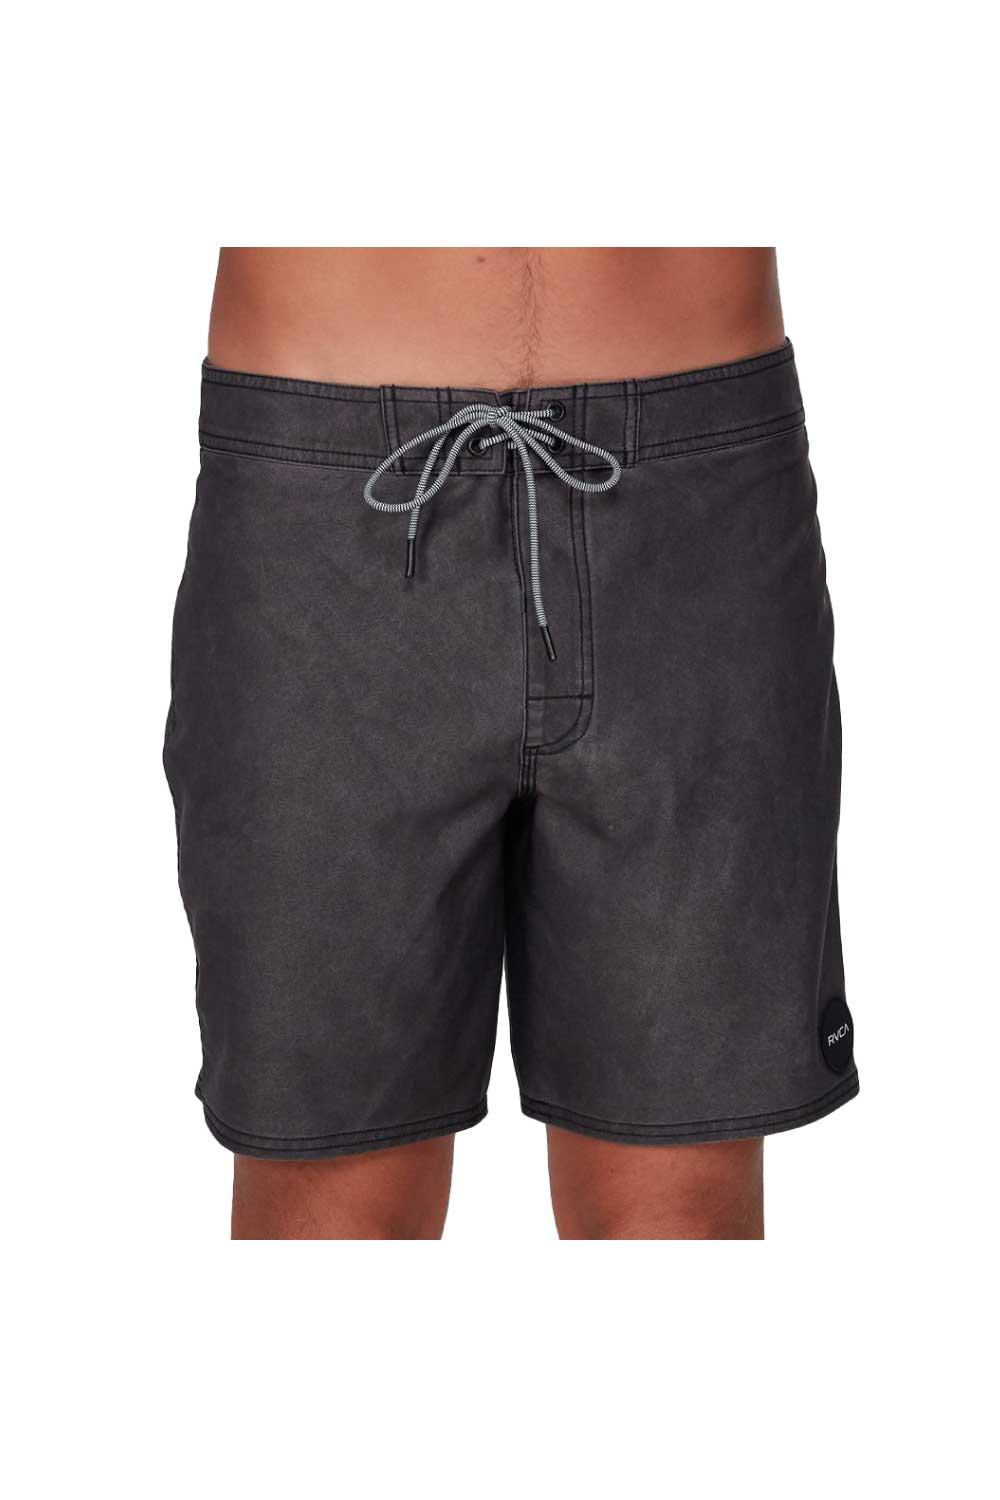 "RVCA VA Trunk 17"" Men's Boardshort"